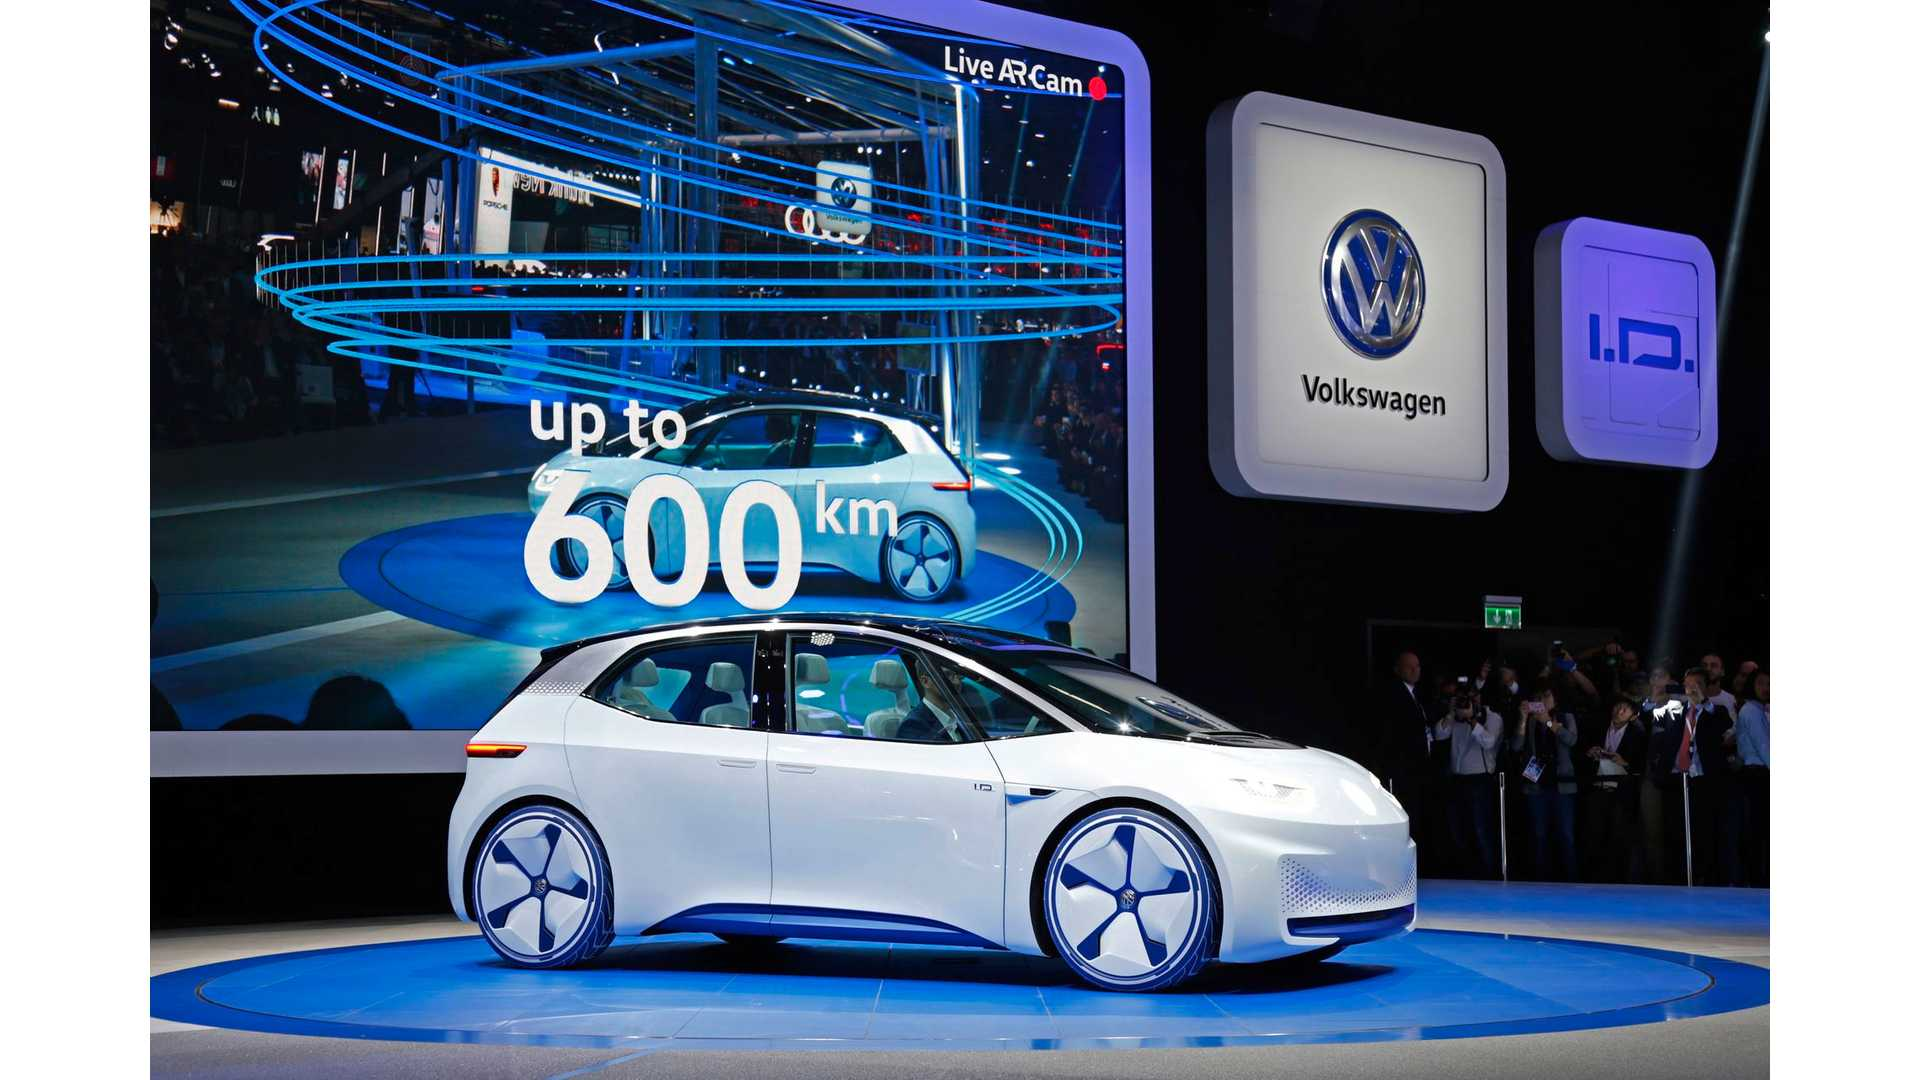 Volkswagen E Golf Will Die Off When New All Electric I D Launches In 2020